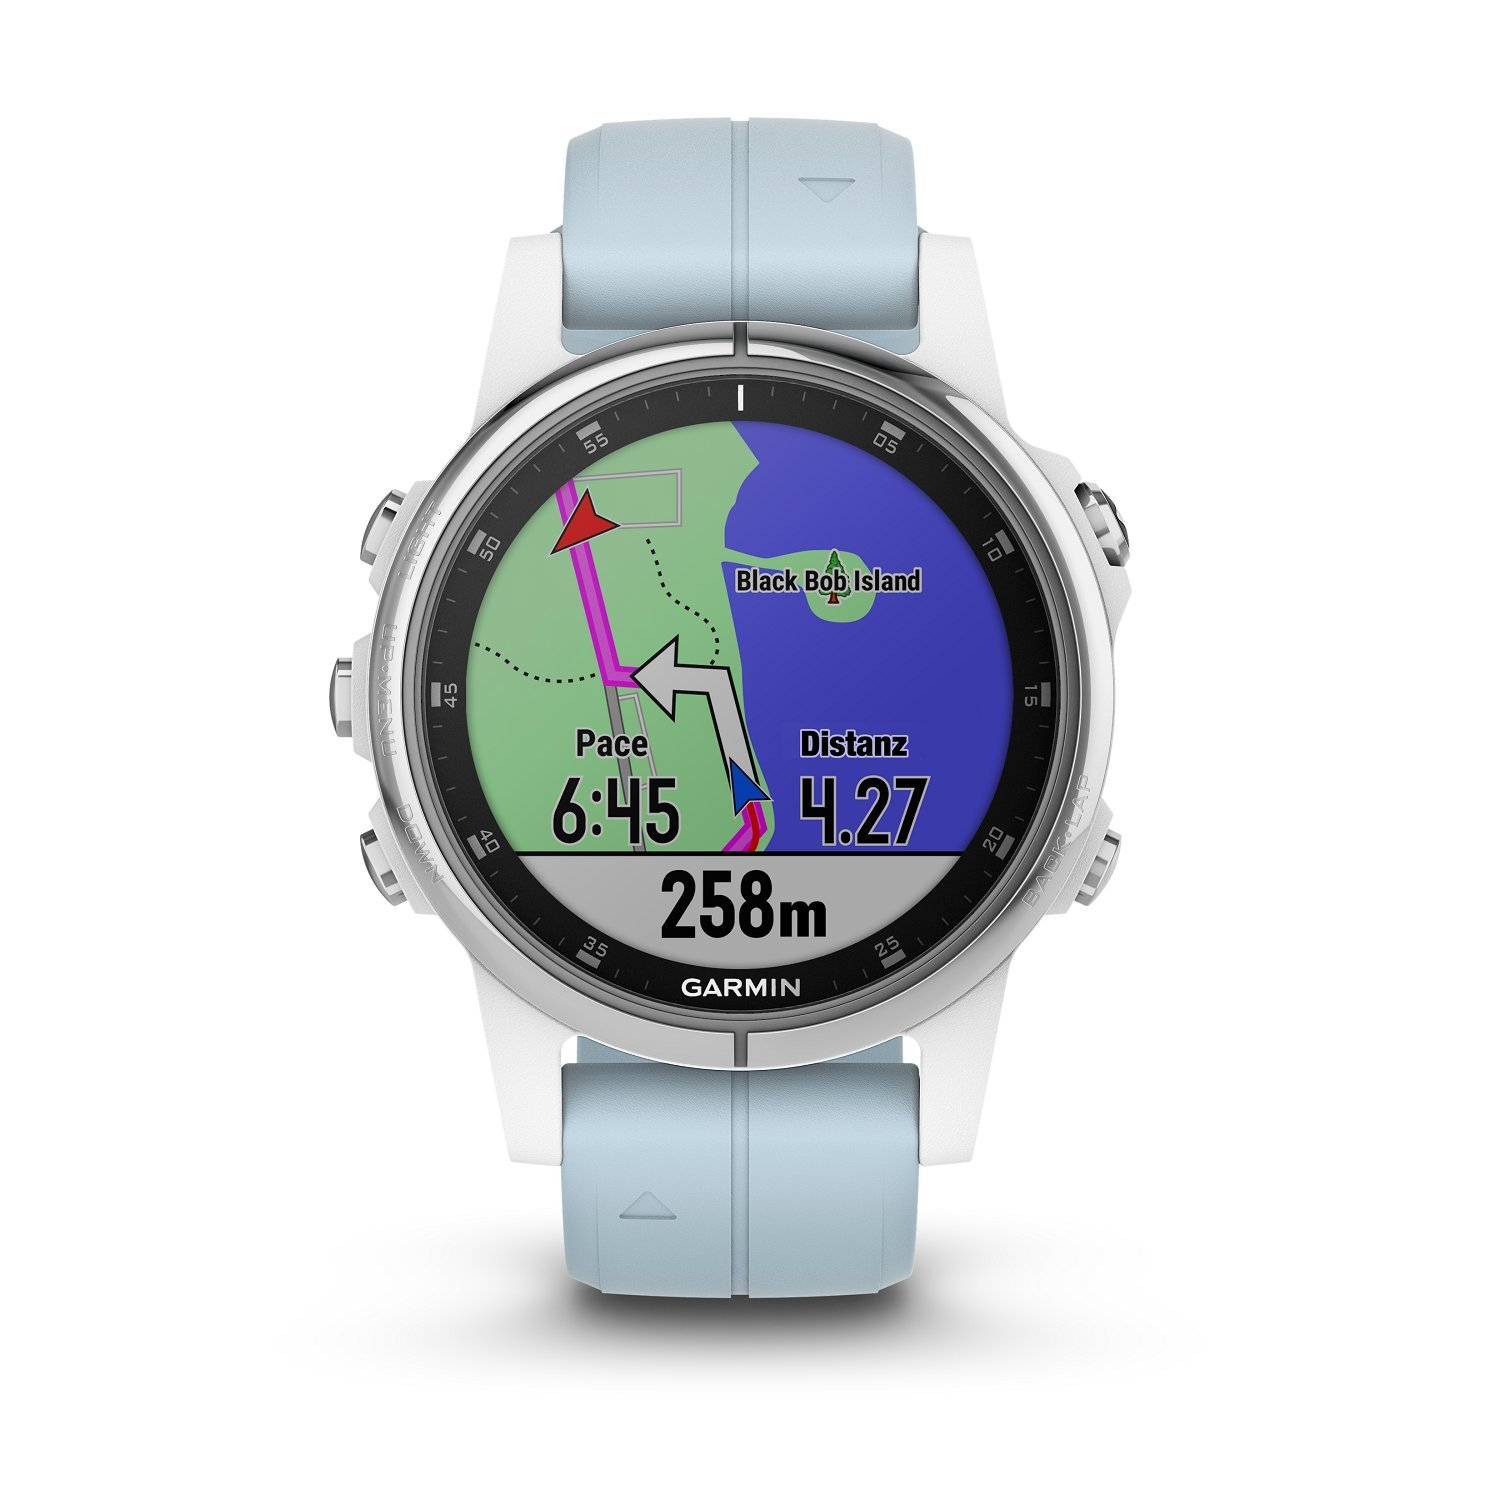 Garmin Fenix 5S Plus - Reloj GPS multideporte, color azul (celeste): Amazon.es: Electrónica